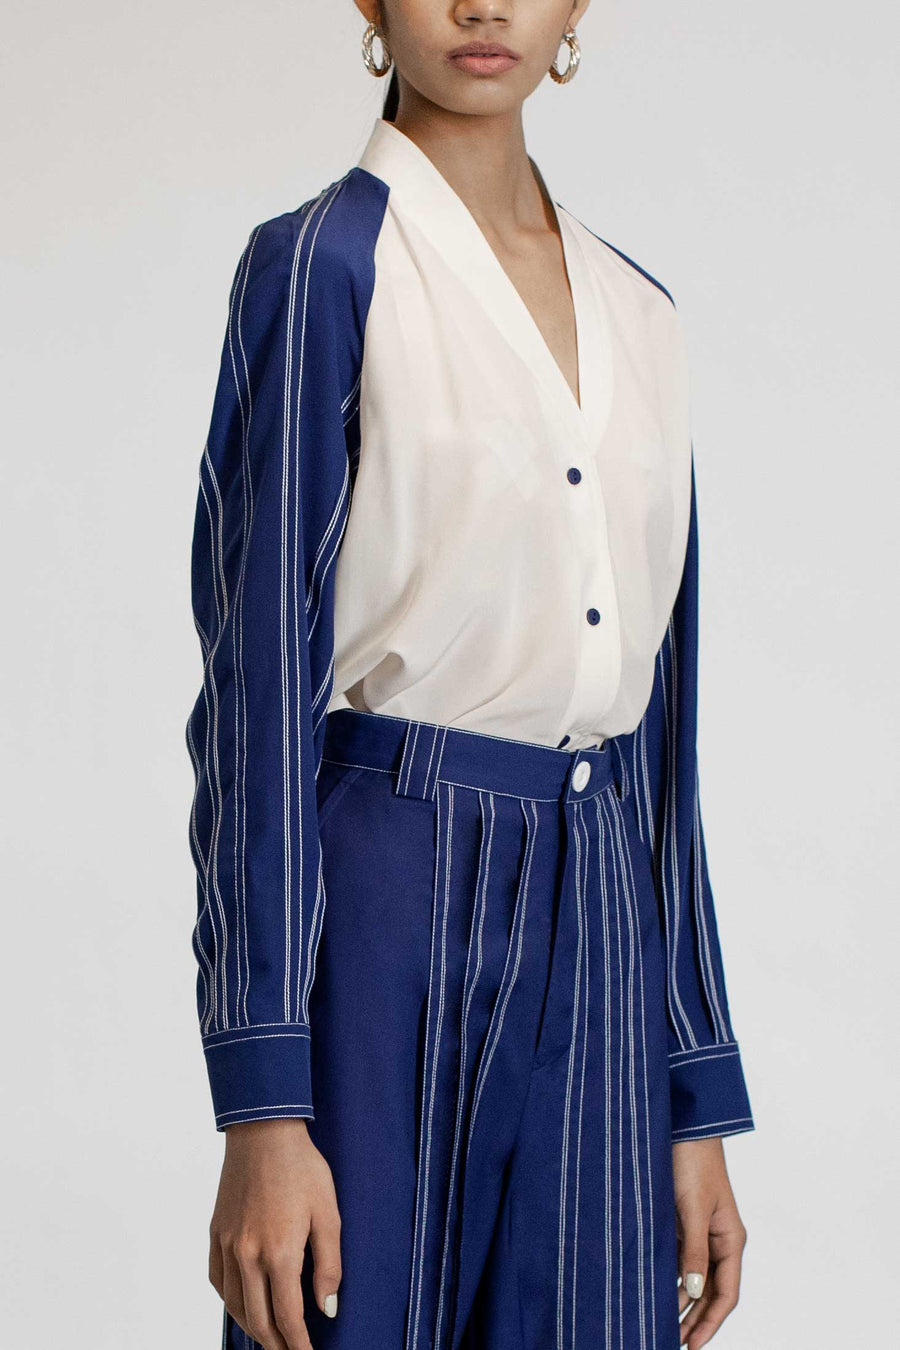 Tuck Pleats Shirt